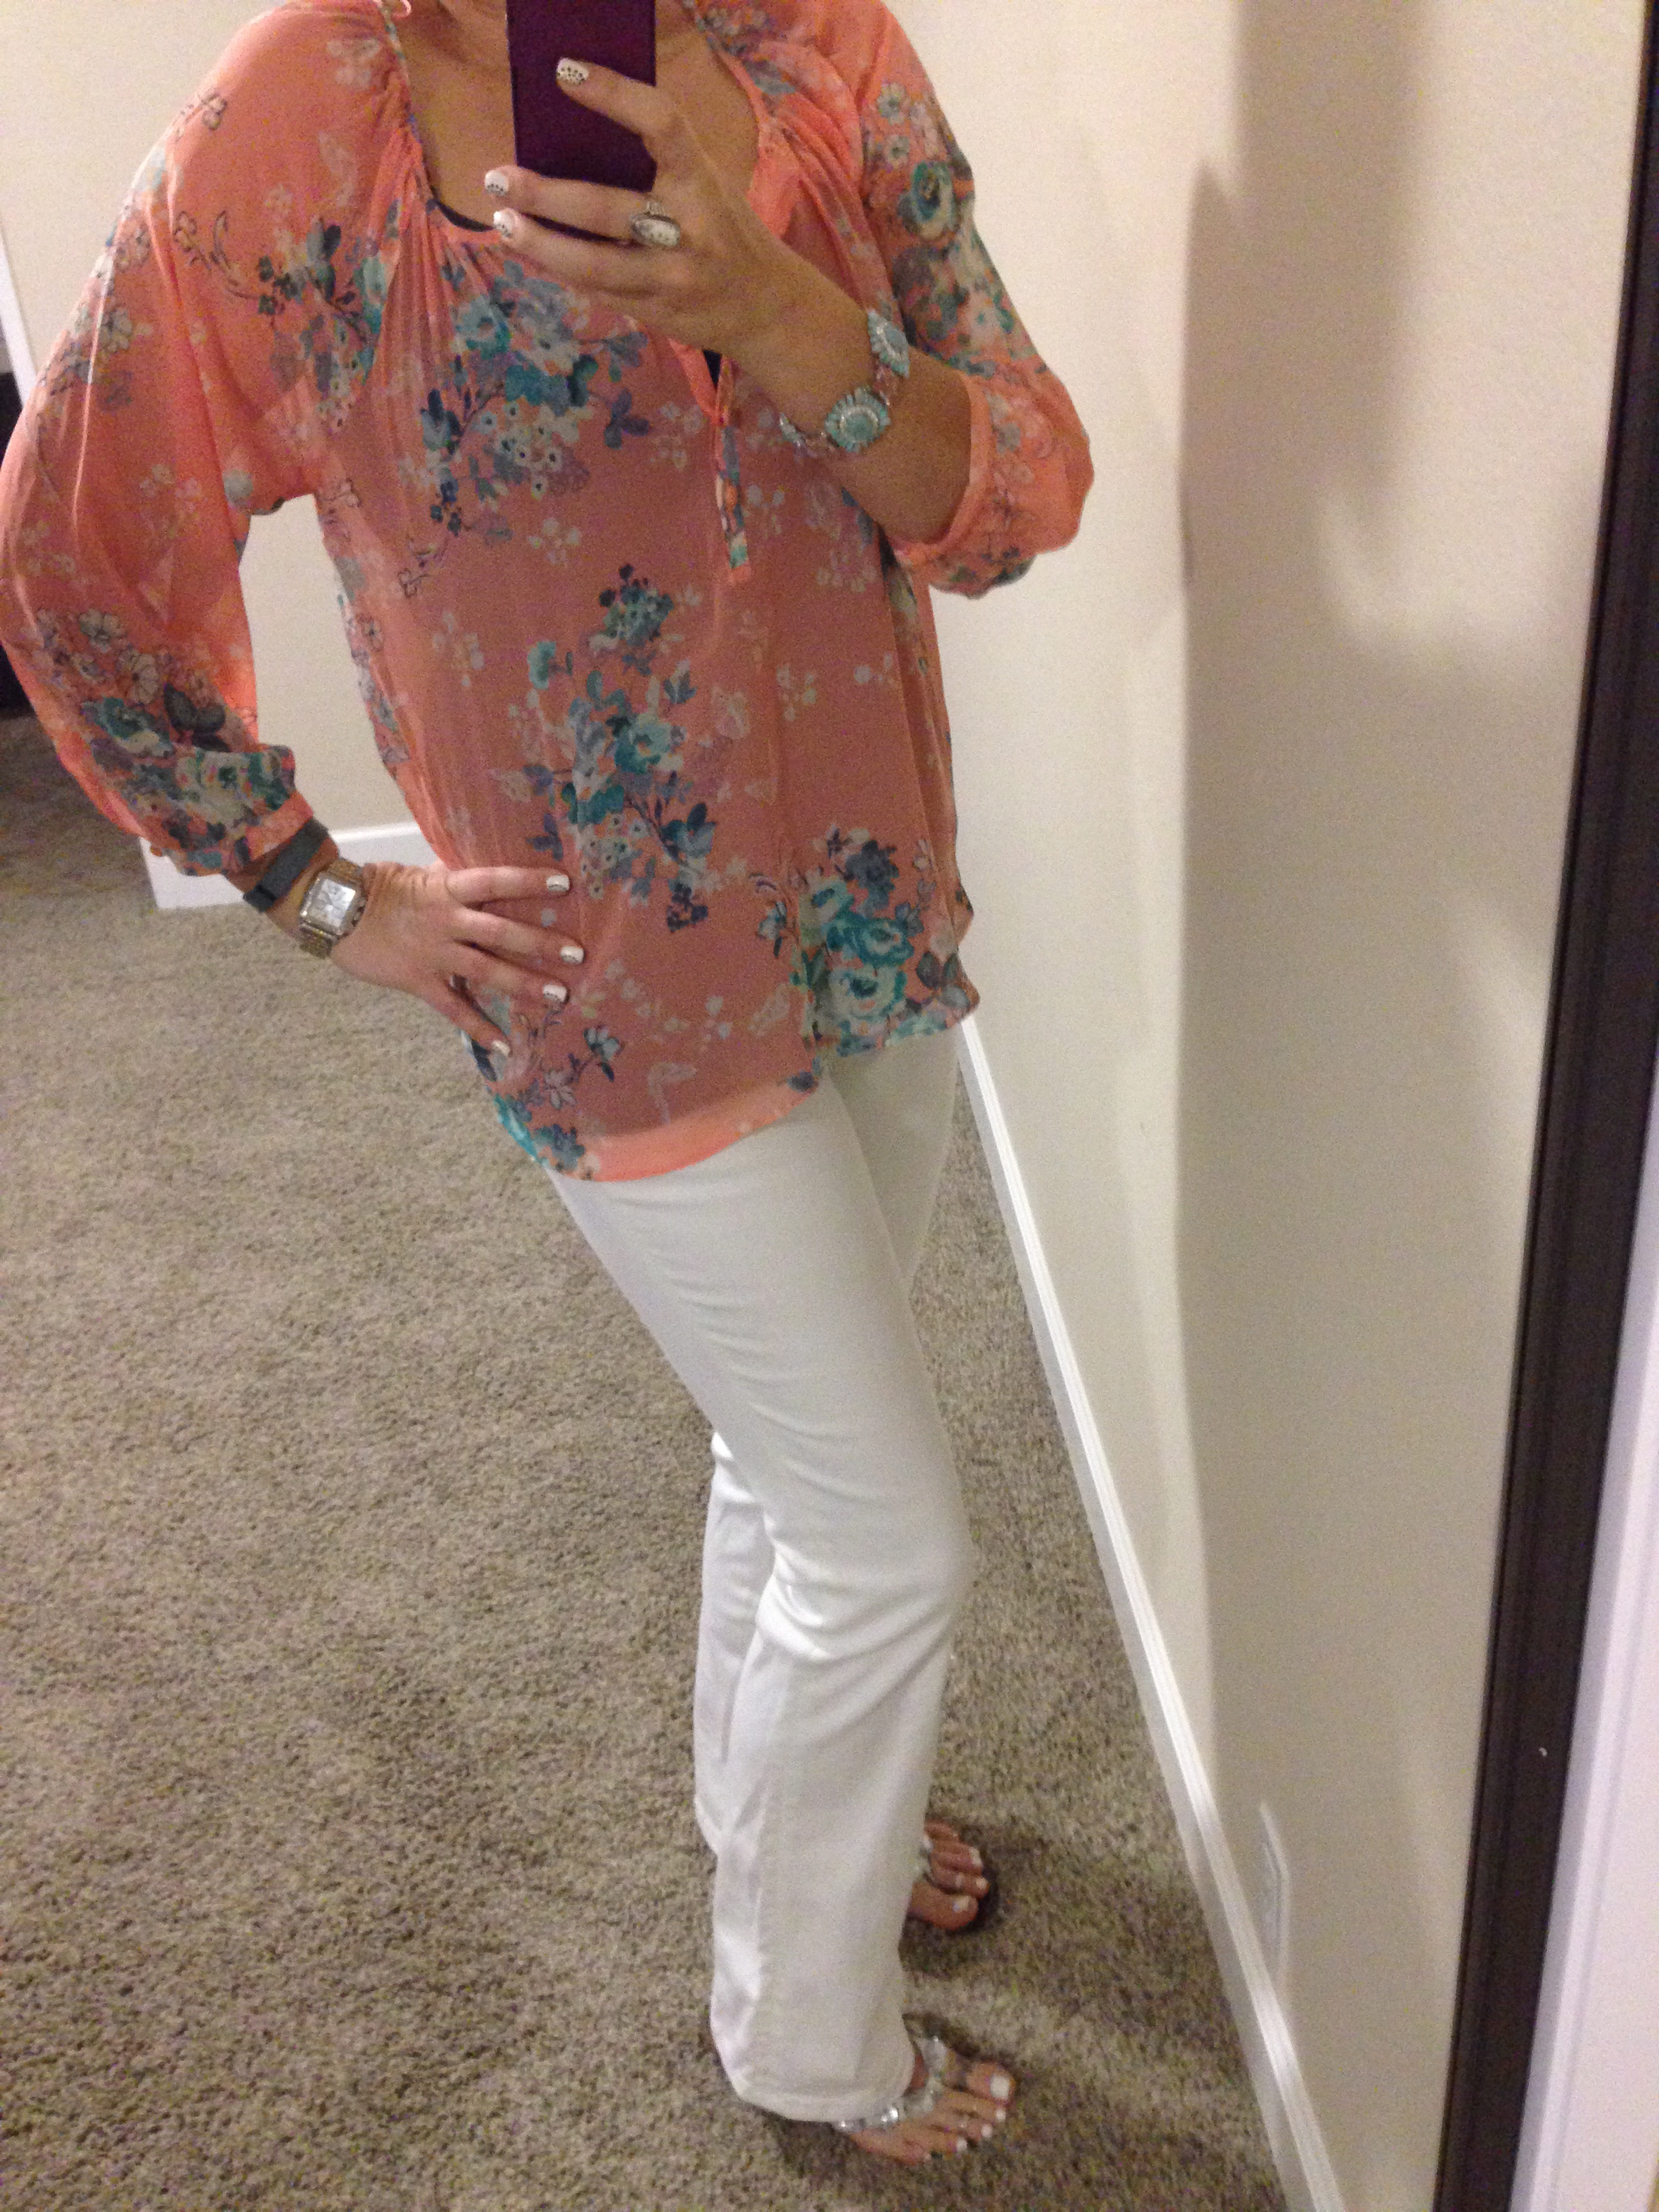 Blouse: c/o Kohls; Tank: Envy Me; Jeans: Miss Me; Flip Flops: Nordstrom (old); Bracelet: c/o Carolee; Watch: Michele; Tracker: Fitbit; Earrings: Euro Art Jewelers